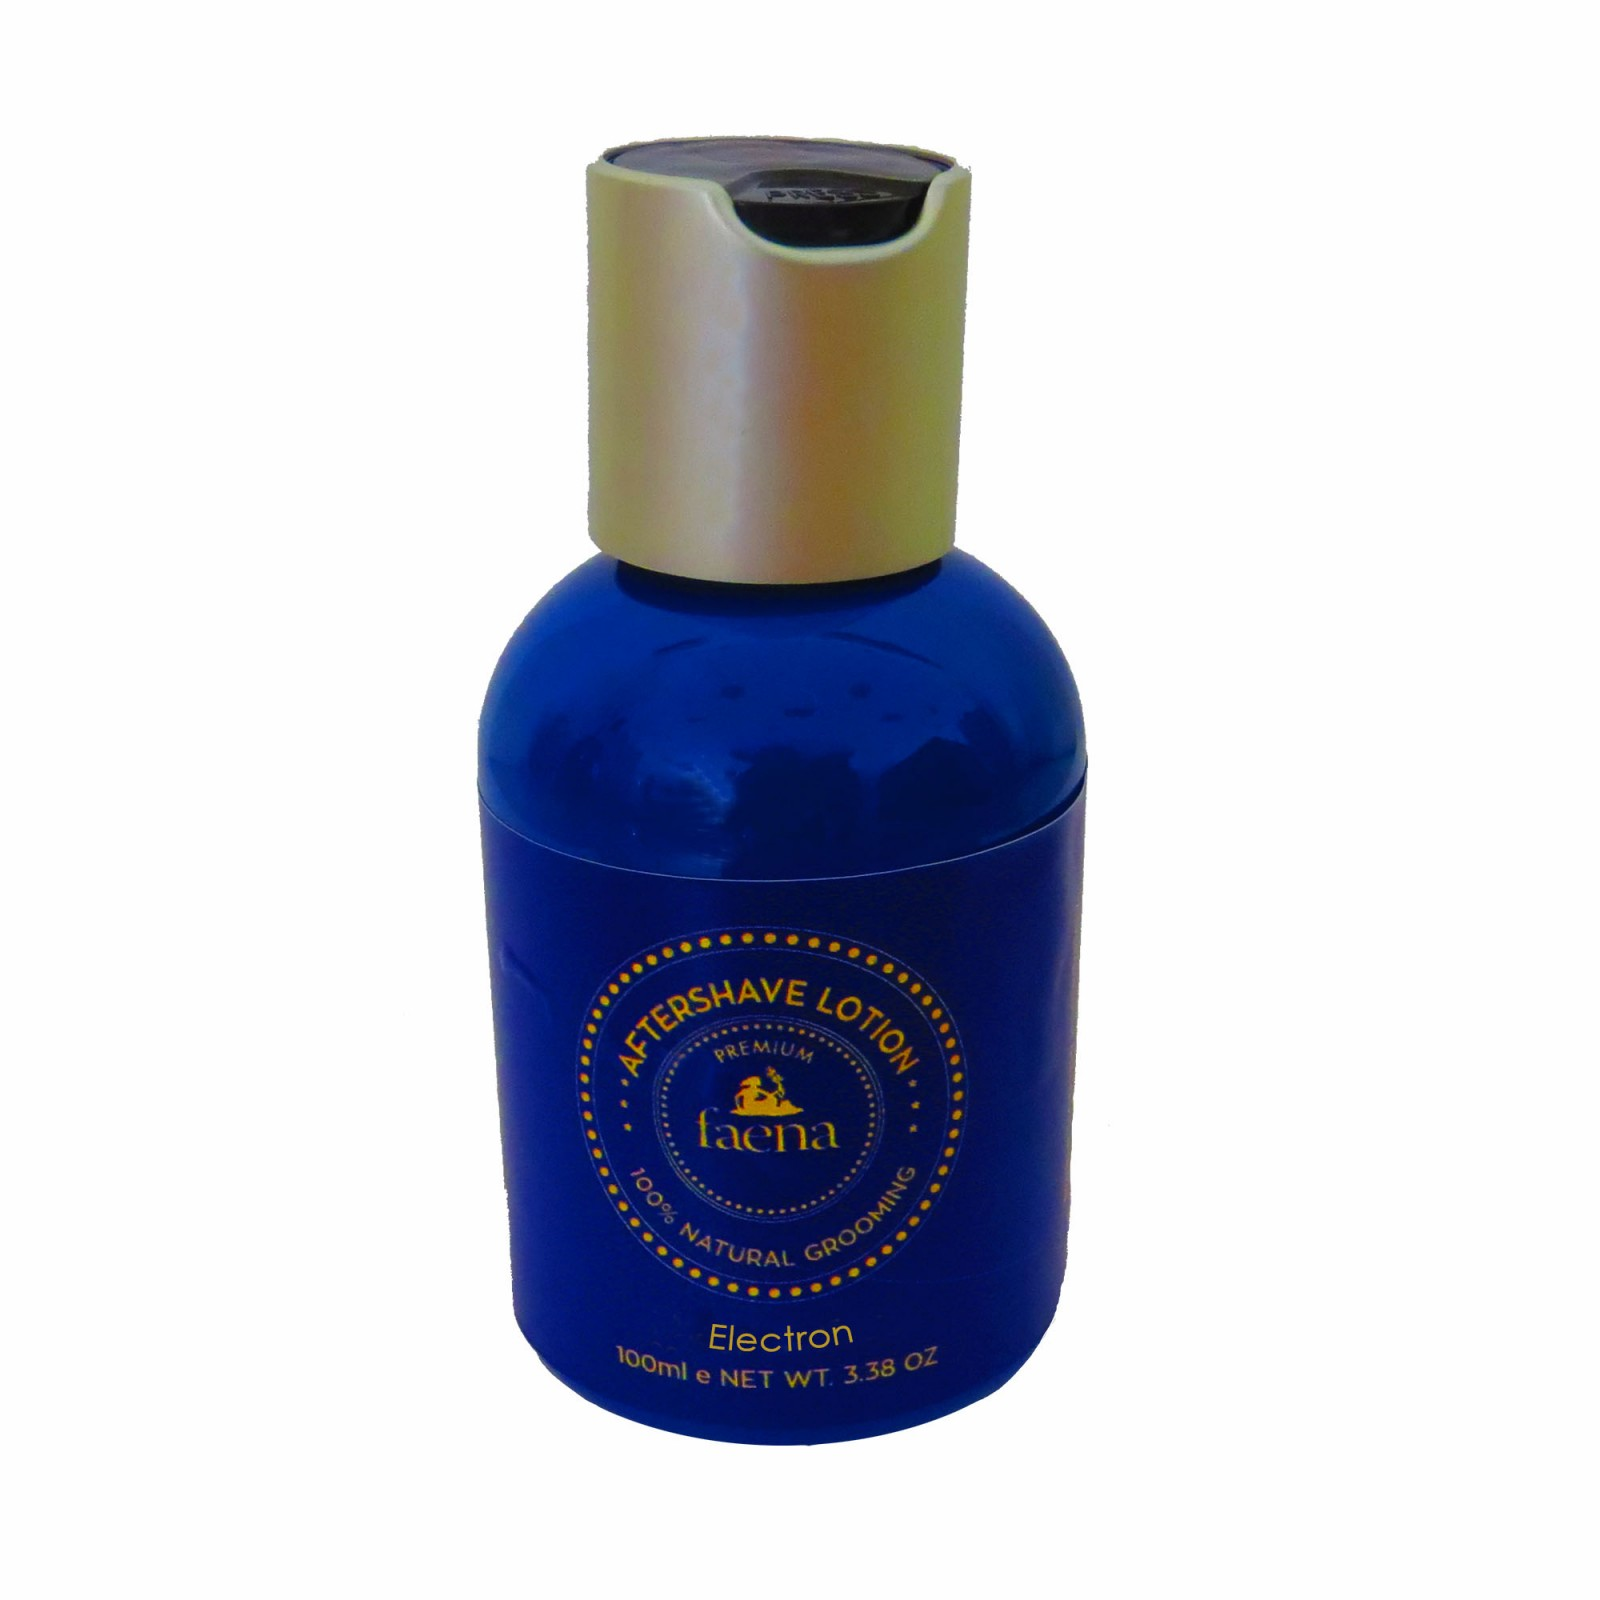 Aftershave Lotion -  Electron